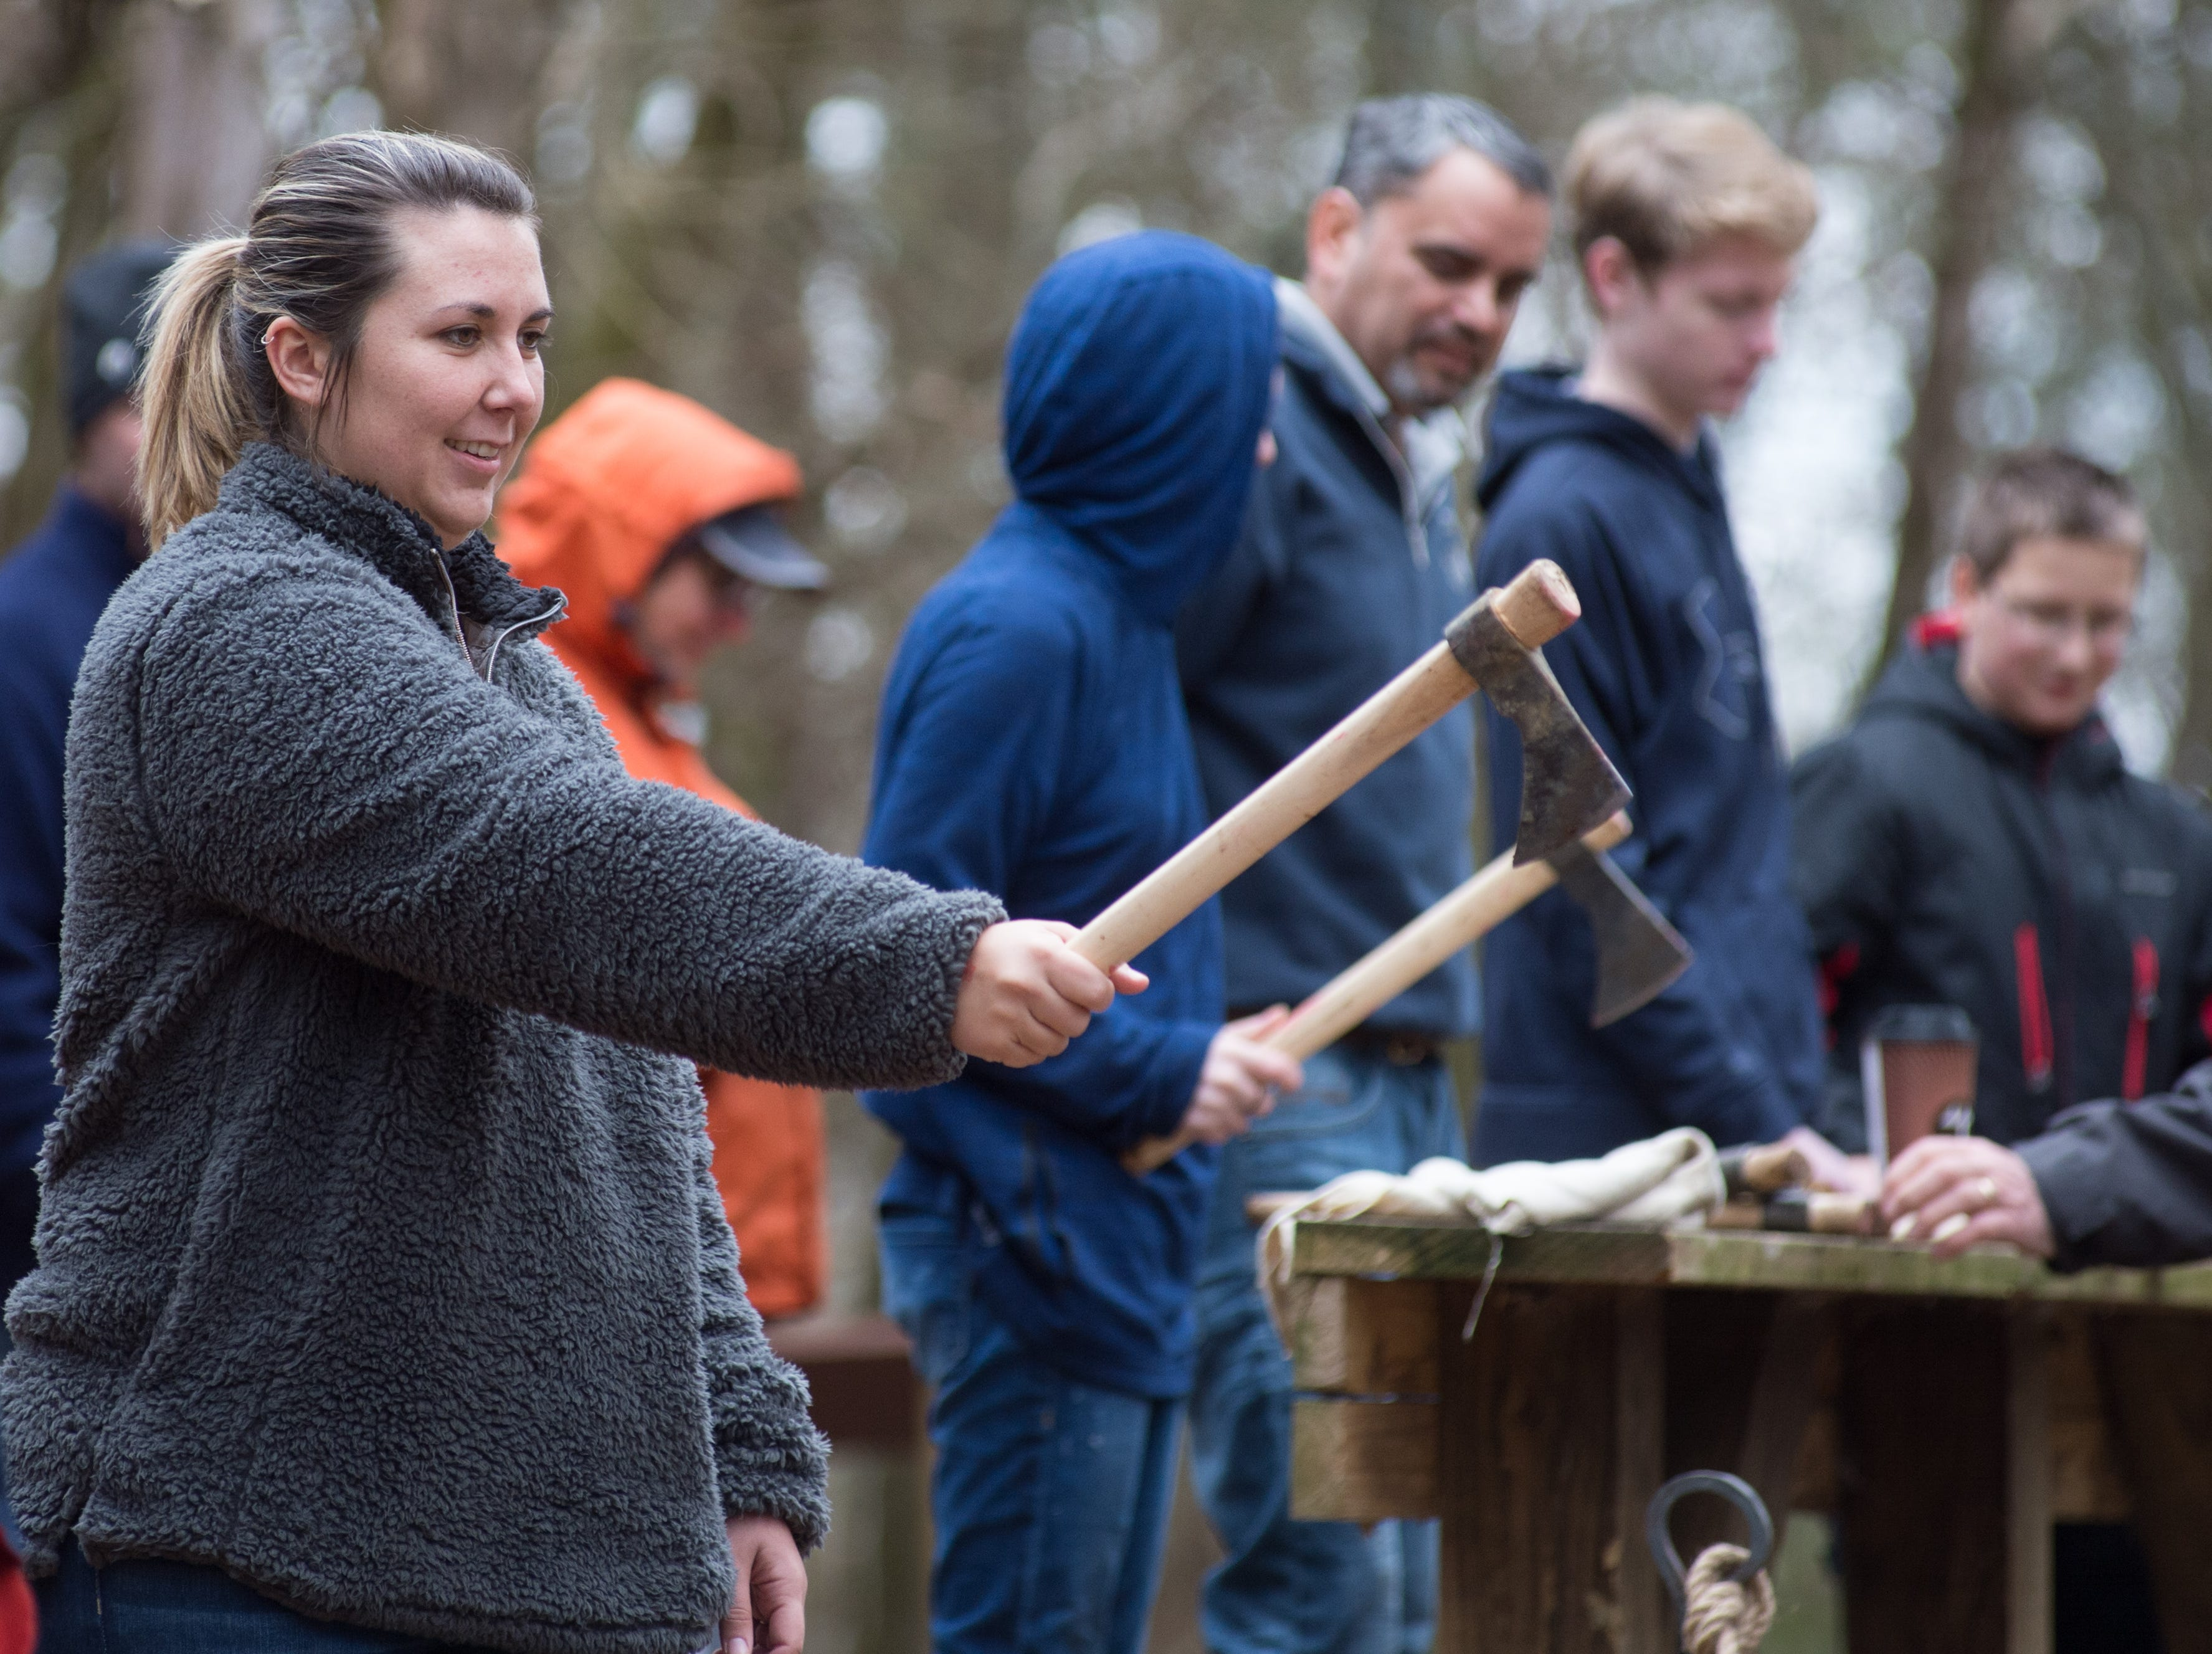 Lynsey Tolar has a good time during a Tomahawk Throwing for Beginners event hosted by Middle Tennessee History Coalition at Bledsoe Creek State Park on Saturday, Jan. 12.